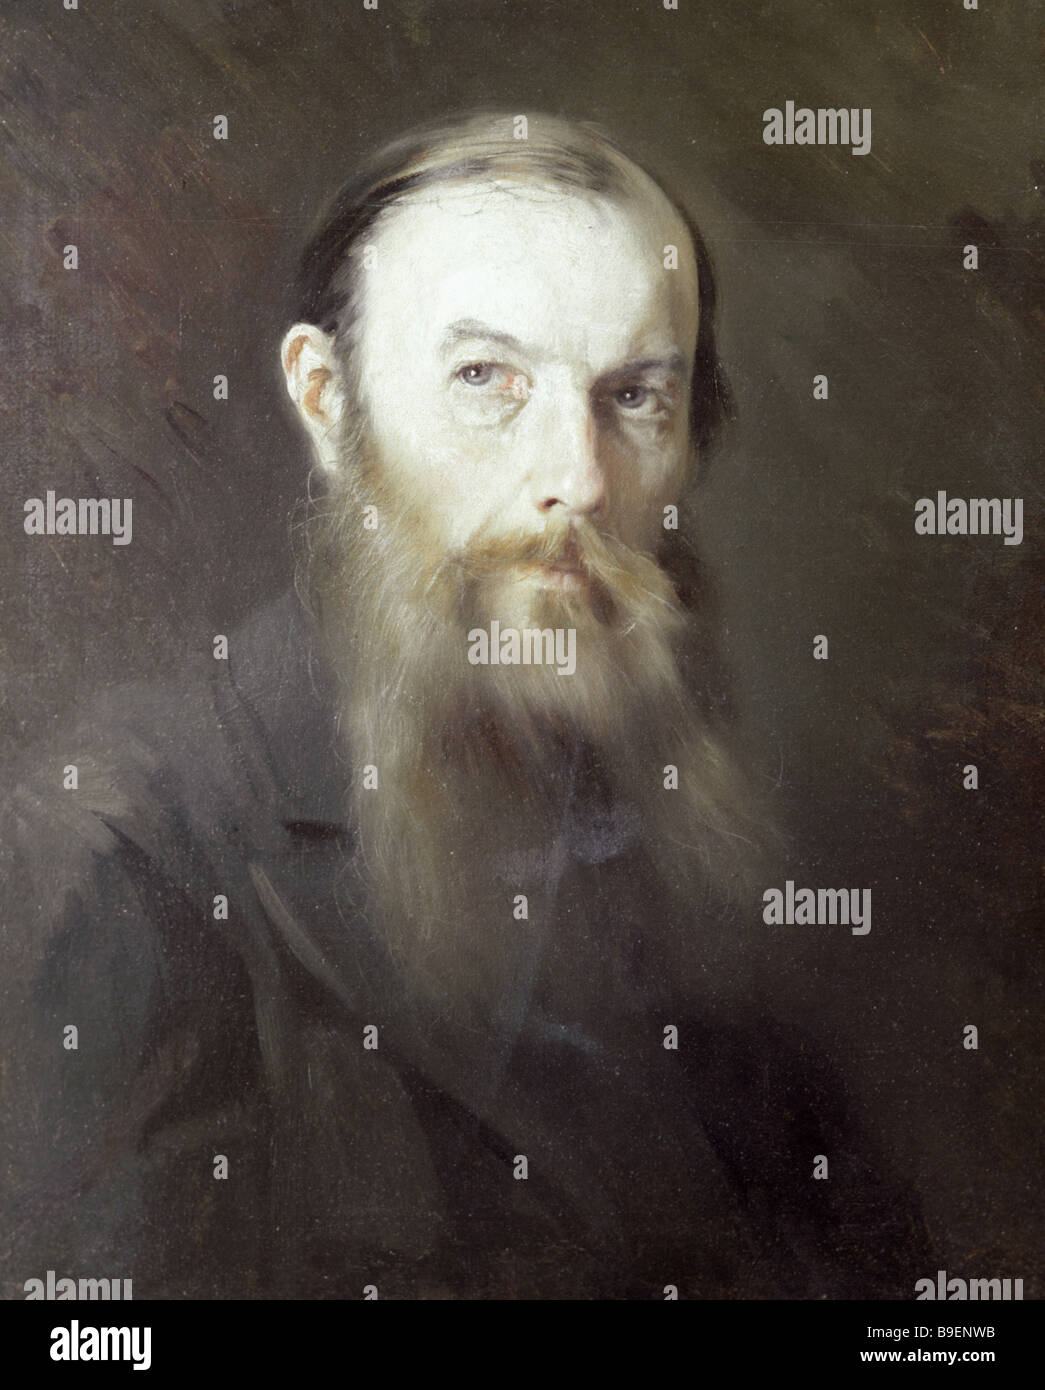 Reproduction of Mikhail Shcherbatov s portrait of Fedor Dostoyevsky from the collection of the Fedor Dostoyevsky - Stock Image